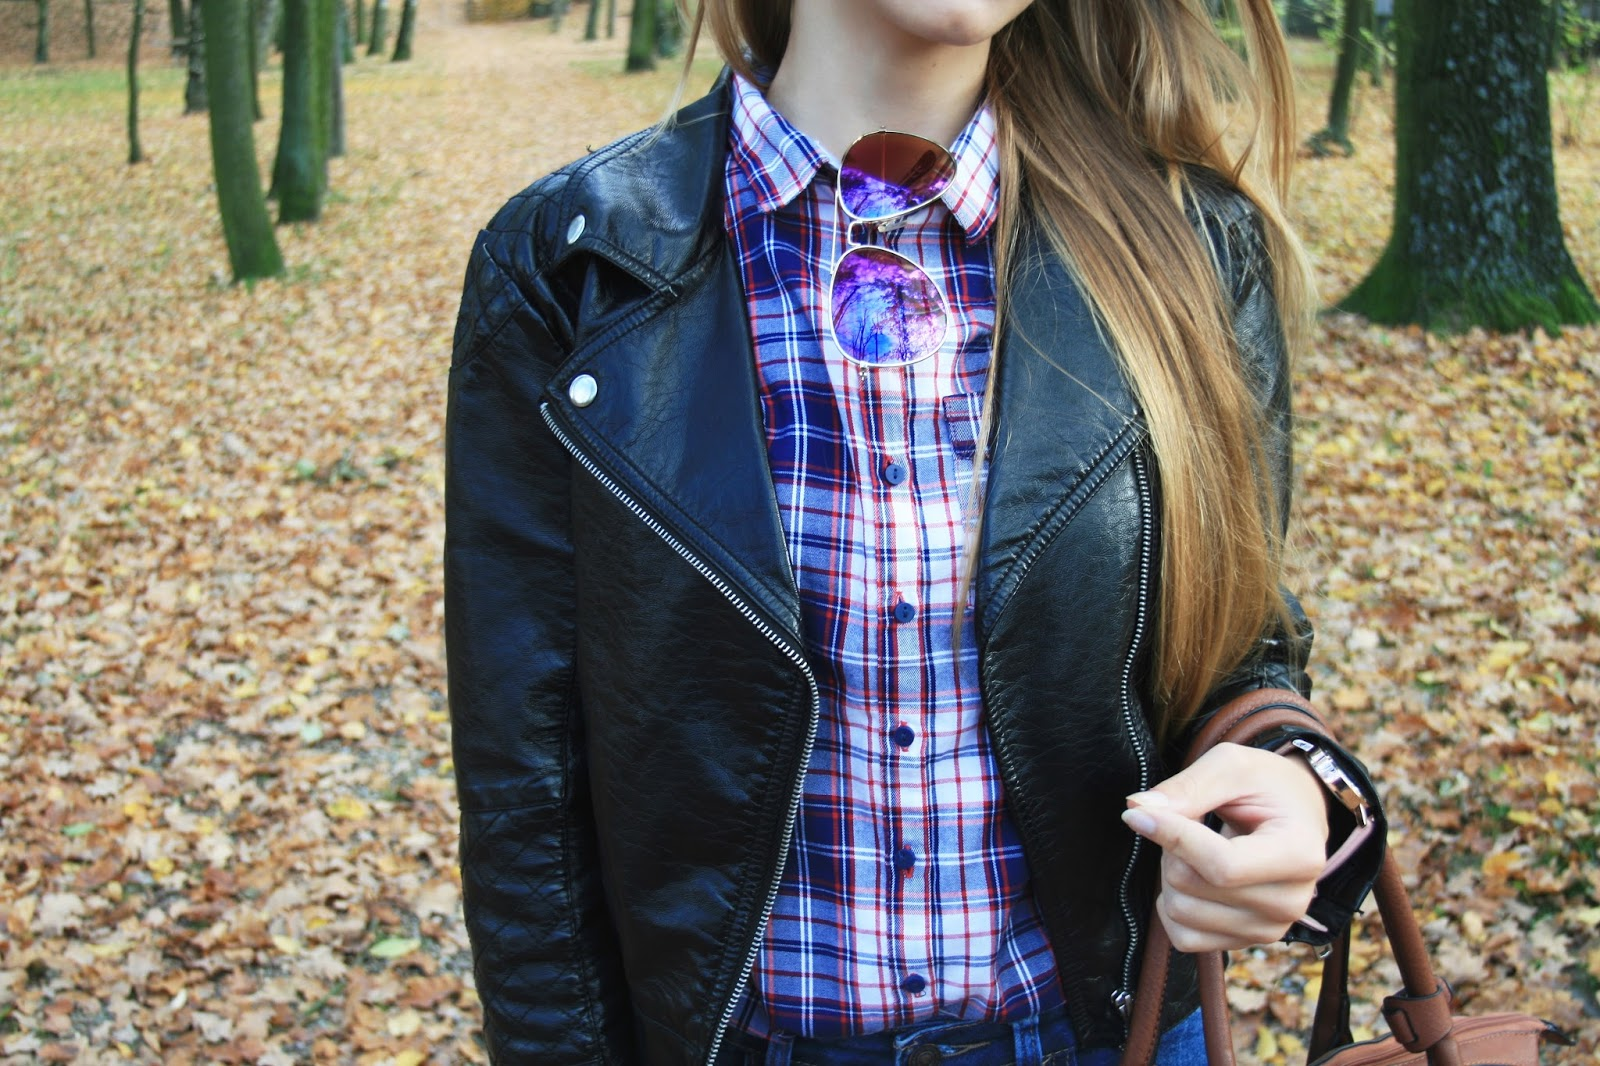 Daily outfit with checkered shirt | Jesienny strój dnia